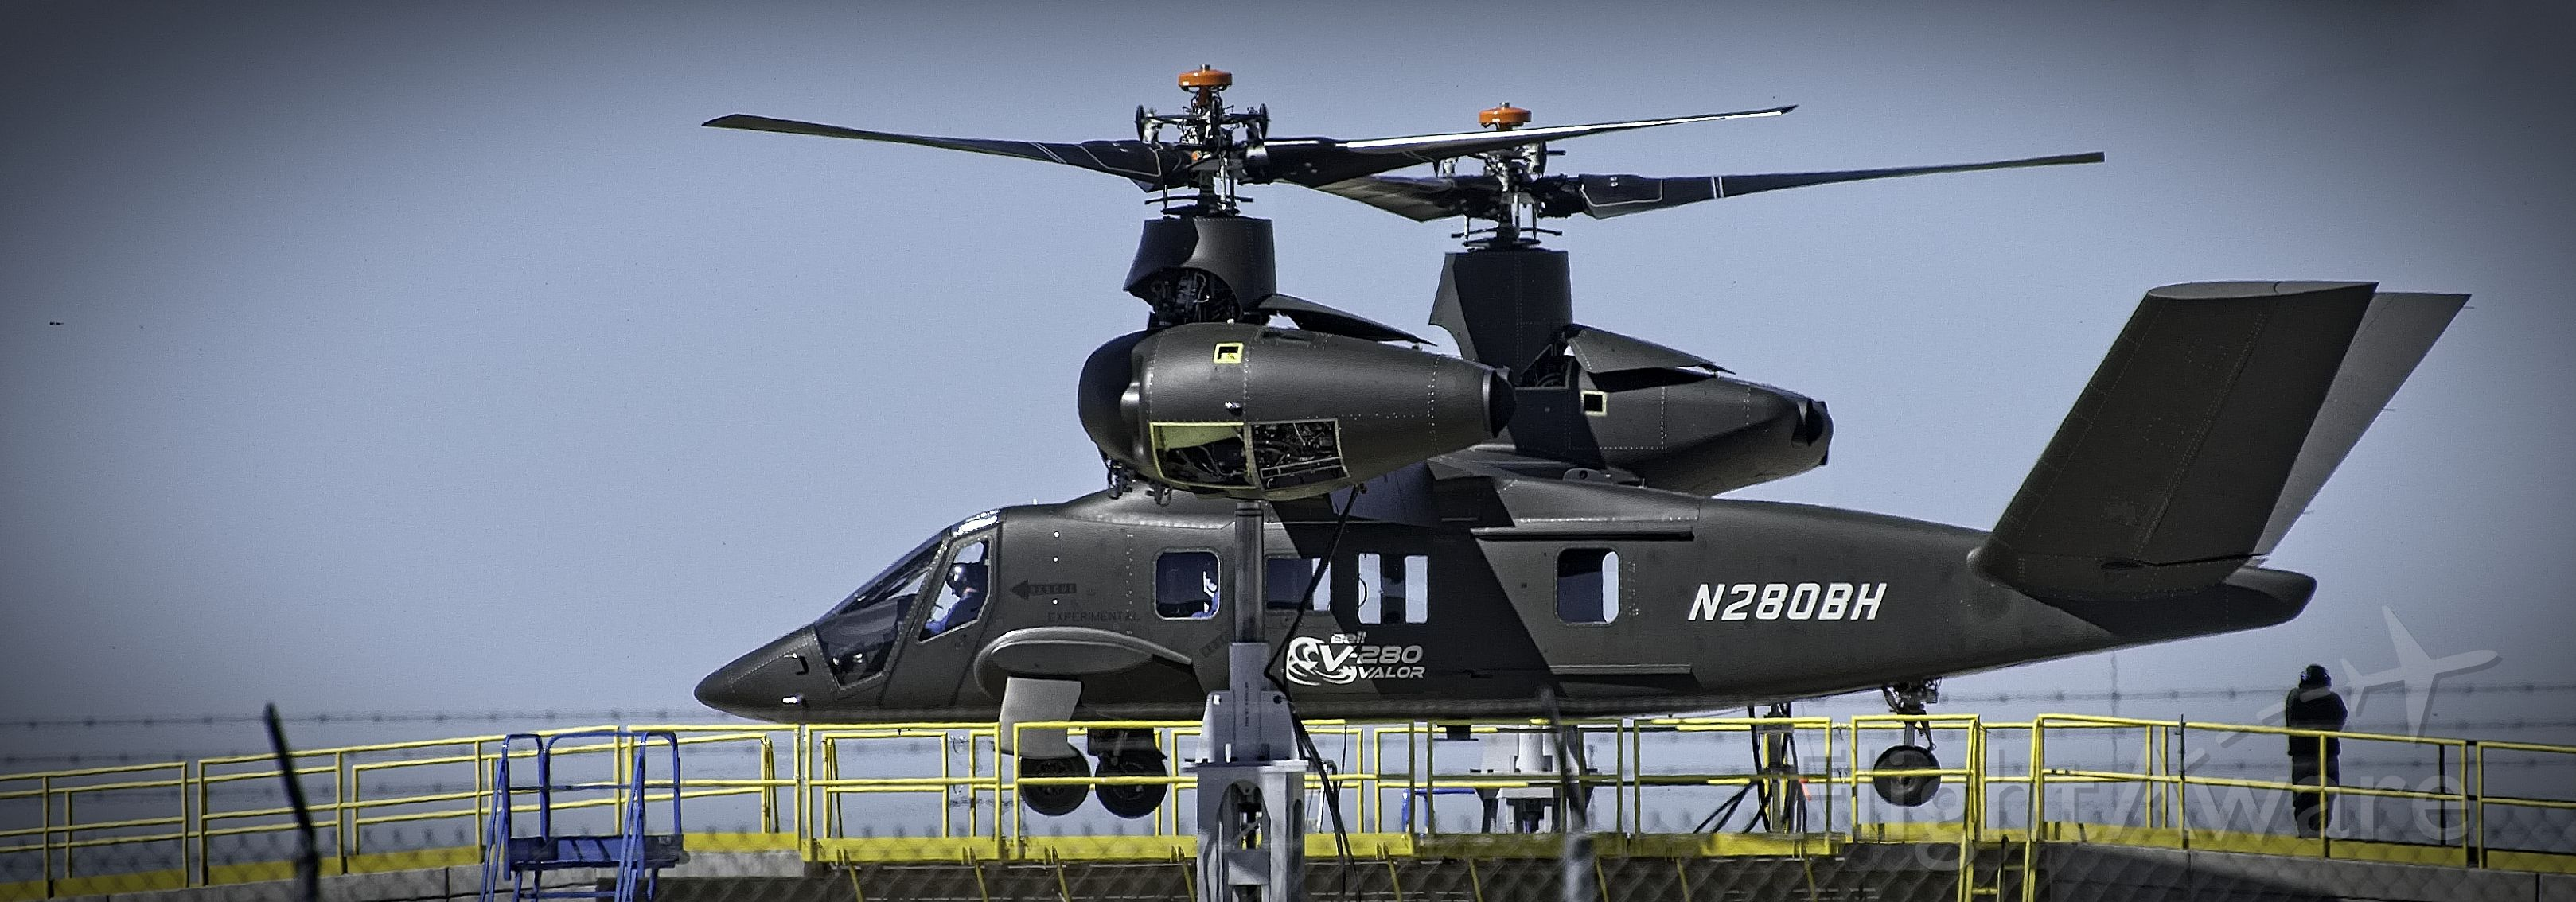 Experimental  (N280BH) - Prototype Bell V-280 VALOR up on the test pedestal at Bell Helicopter Plant in Amarillo, TX